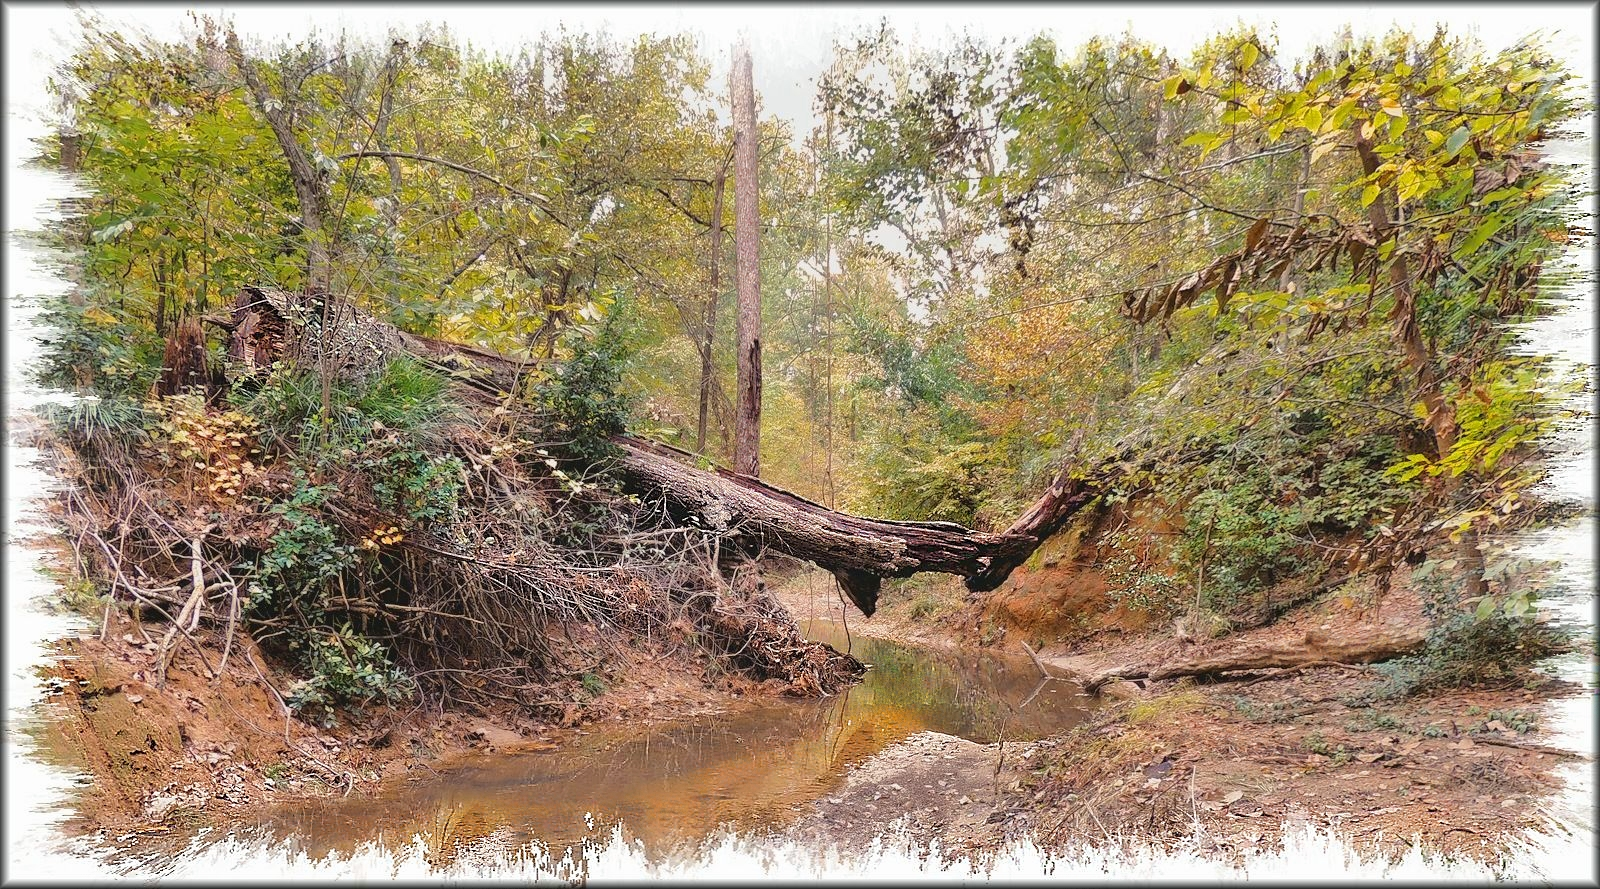 Broken Tree over Burrows Creek at the SFA Recreational Trails in Historic Nacogdoches